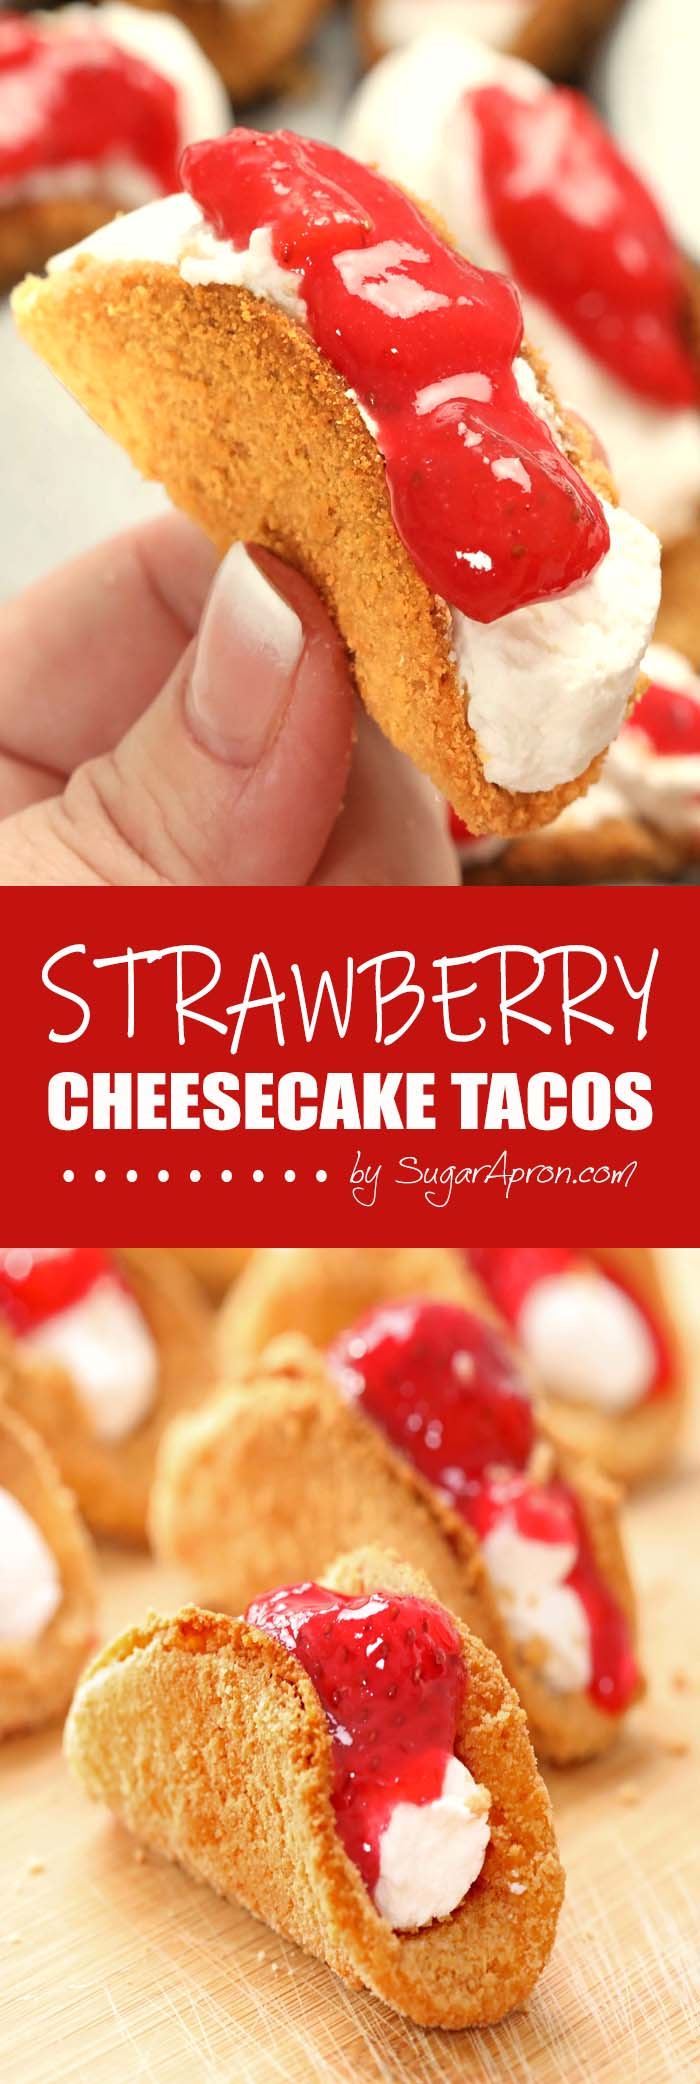 A great dessert idea to make this spring/summer is Strawberry Cheesecake Tacos!They are fun and easy to make and great to serve to a crowd !